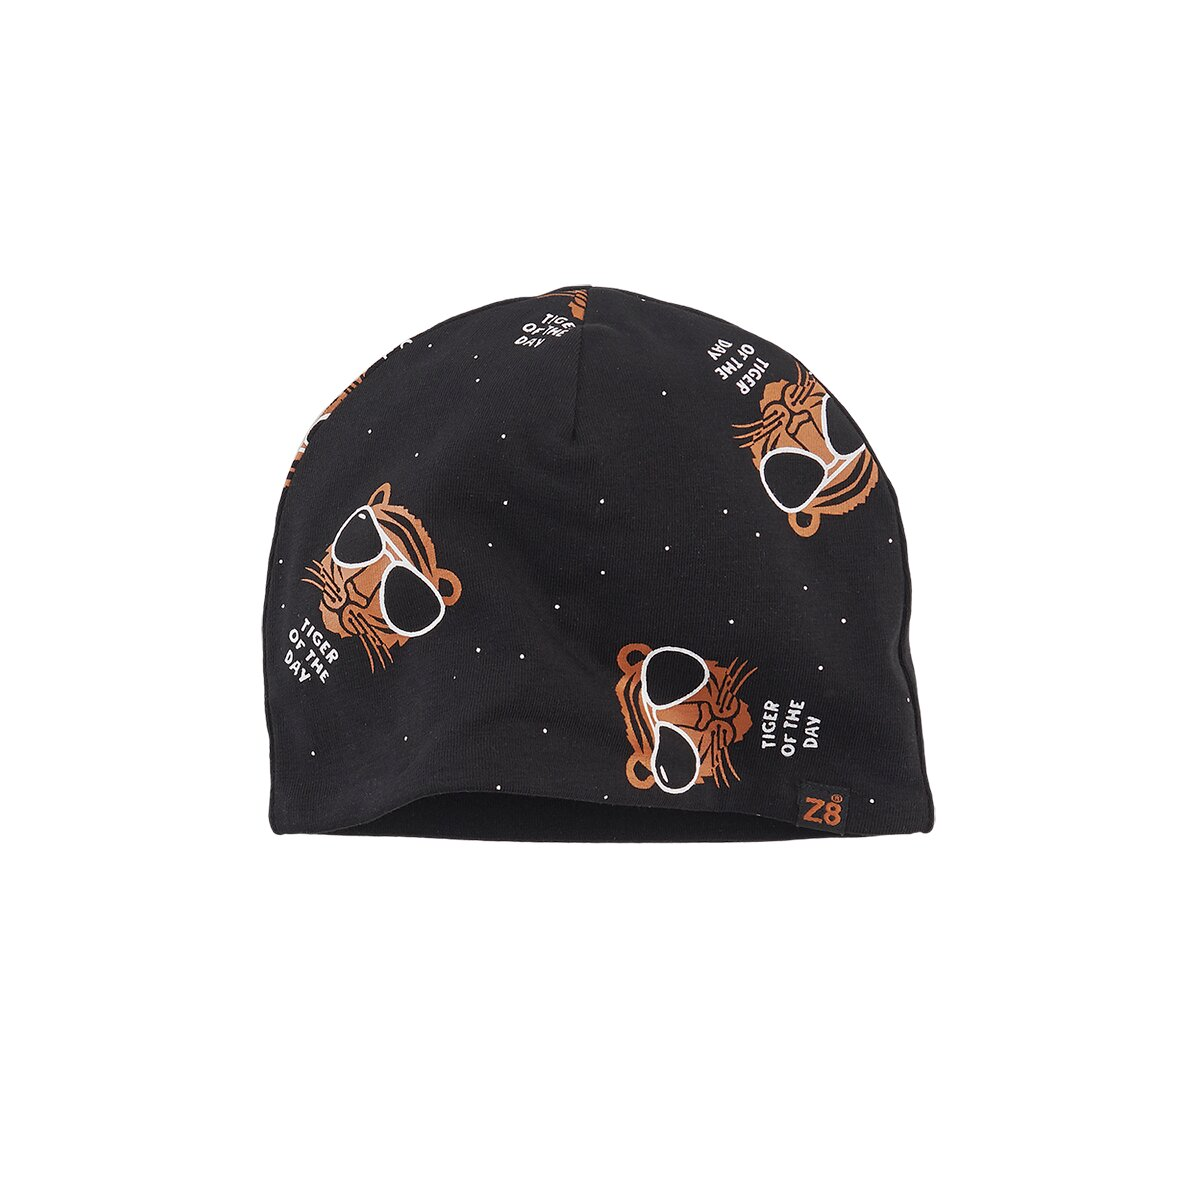 z8-newbornproducts200052valencia-tiger-black